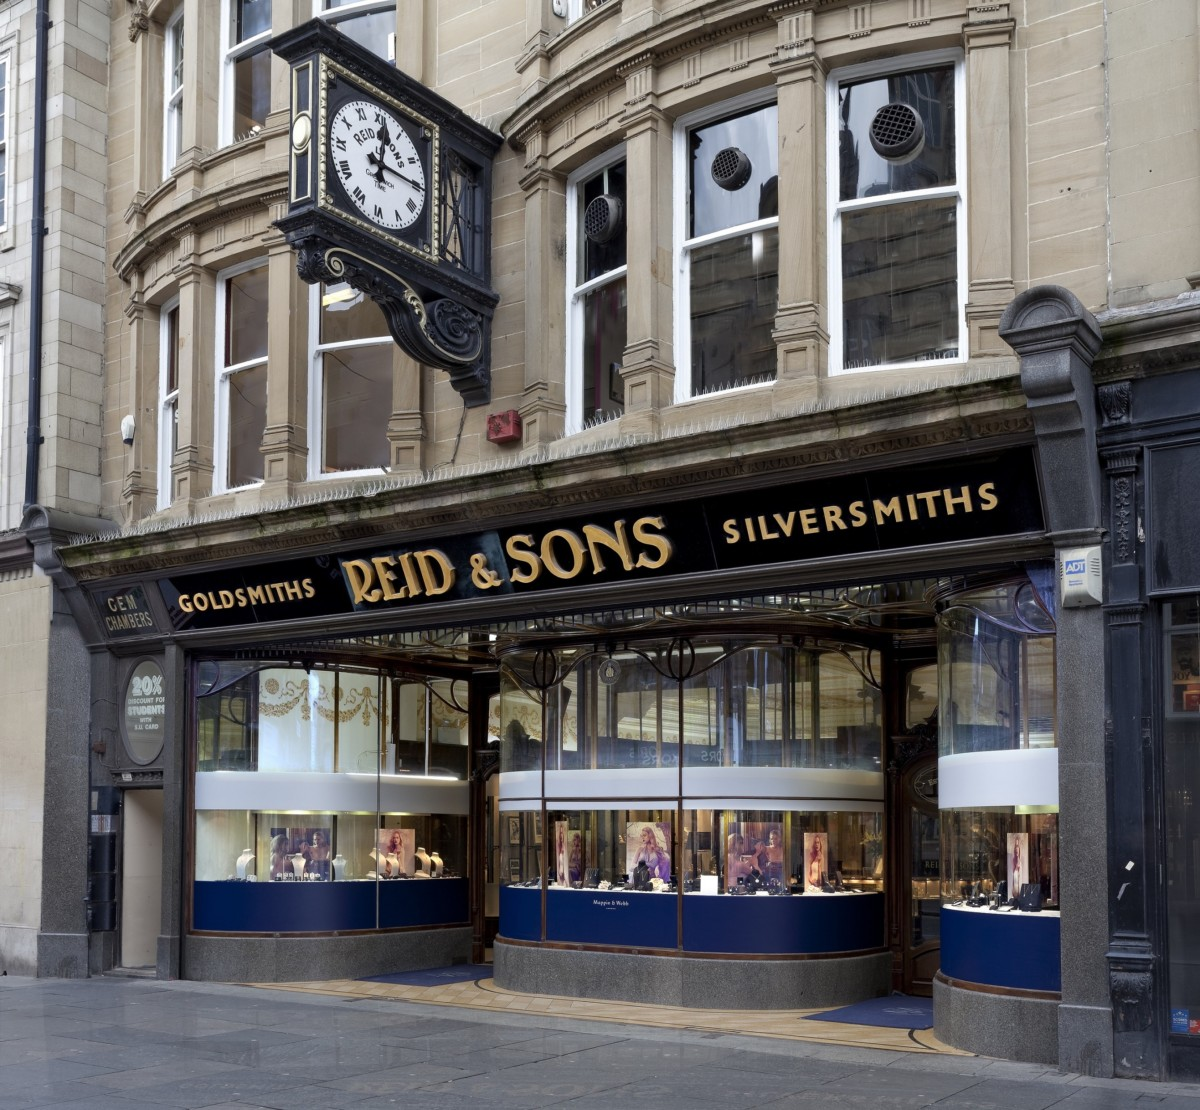 Historic jewellers Reid & Sons on Blackett Street